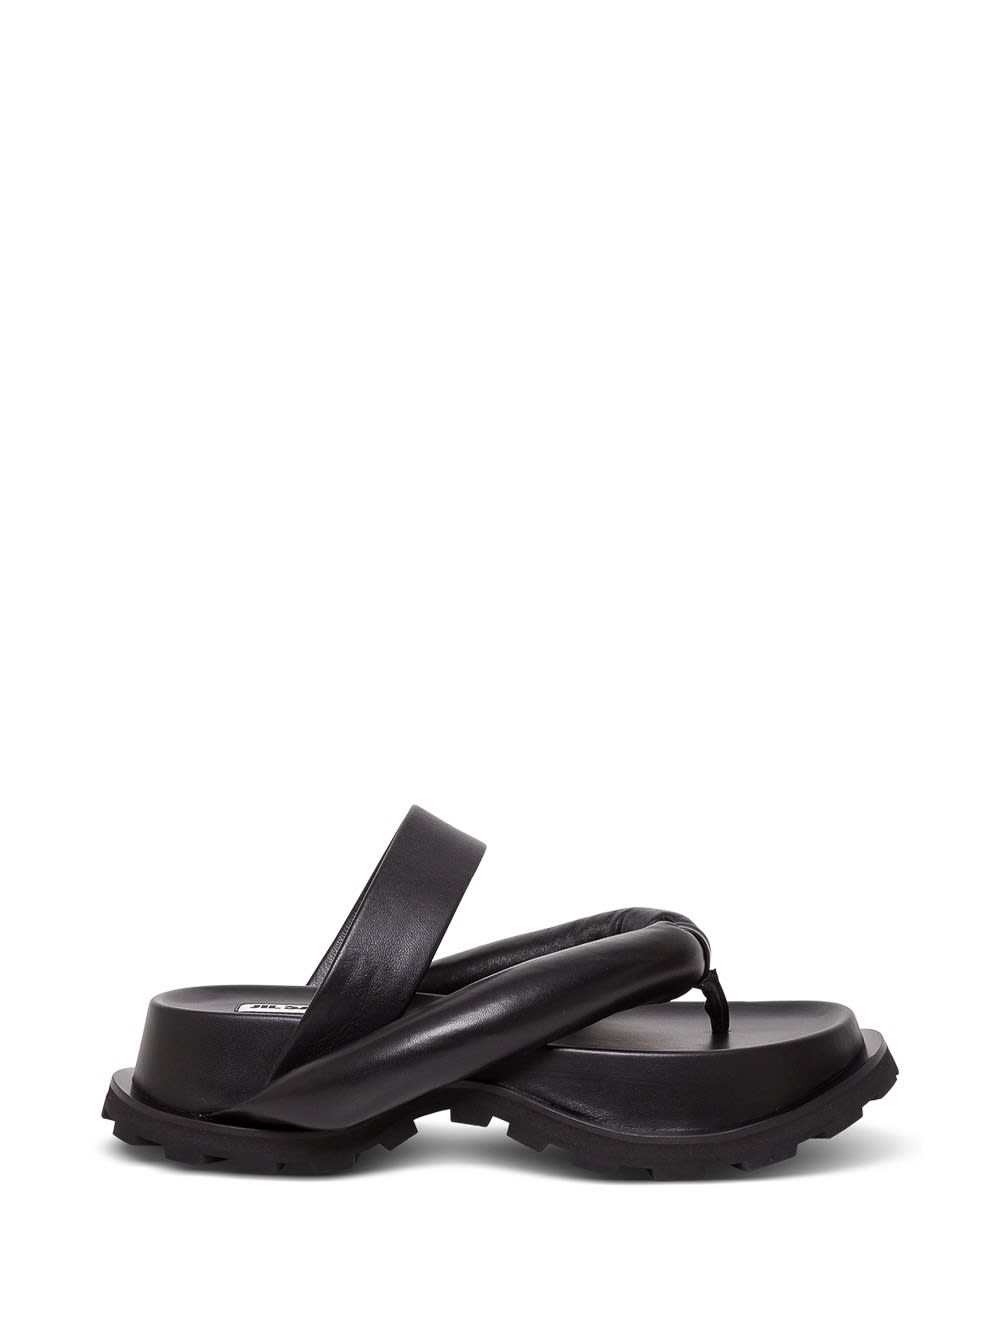 Jil Sander OUTDOOR PLATFORM SANDALS IN NAPPA LEATHER